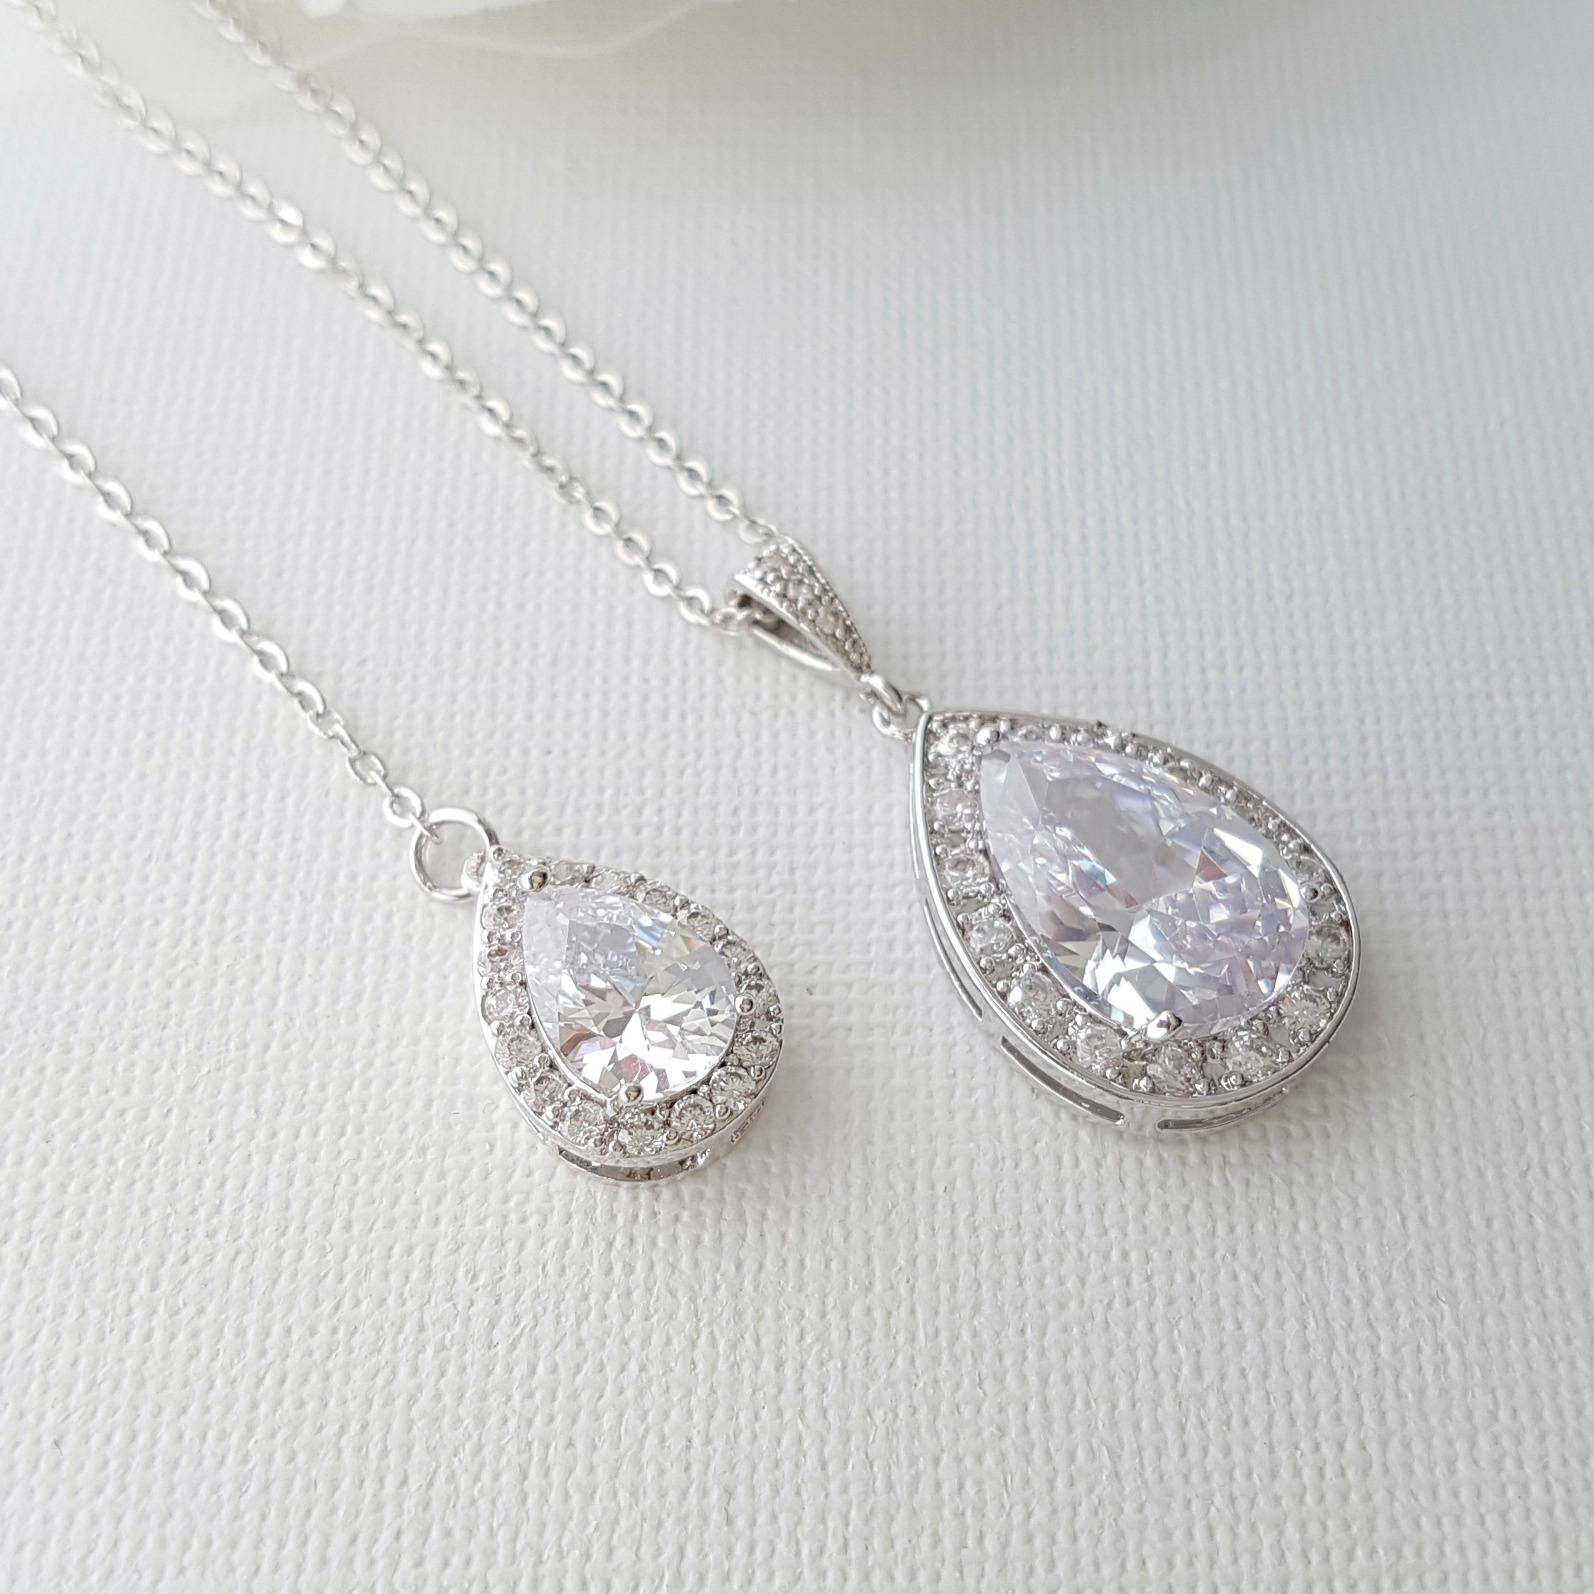 Simple Wedding Back Necklace, Crystal Backdrop Bridal Necklace, Crystal Drop Necklace, Bridesmaid Necklace Gift, Bridal Jewelry, Evelyn - PoetryDesigns